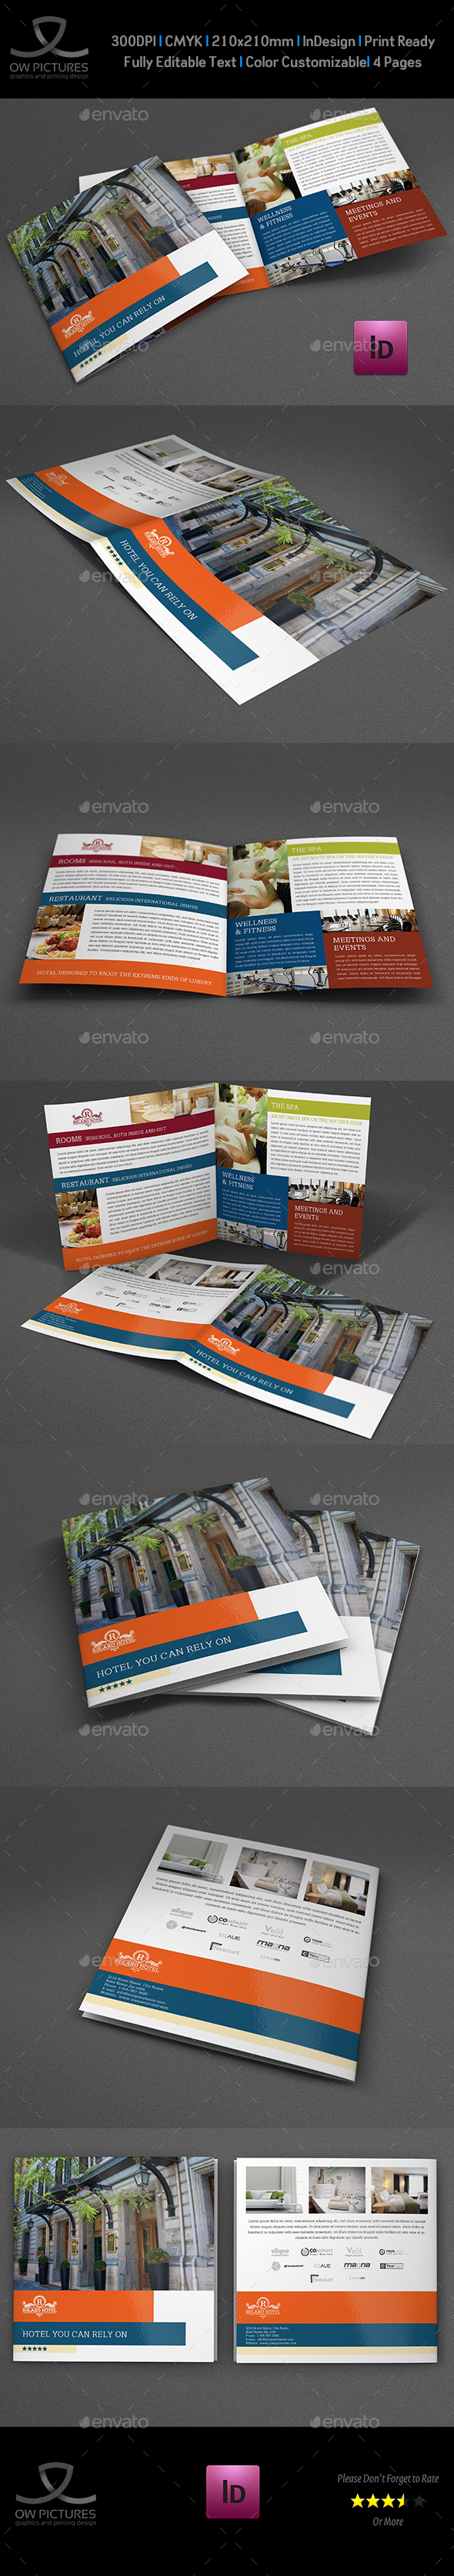 Hotel and Motel Bi-Fold Brochure Template by OWPictures | GraphicRiver